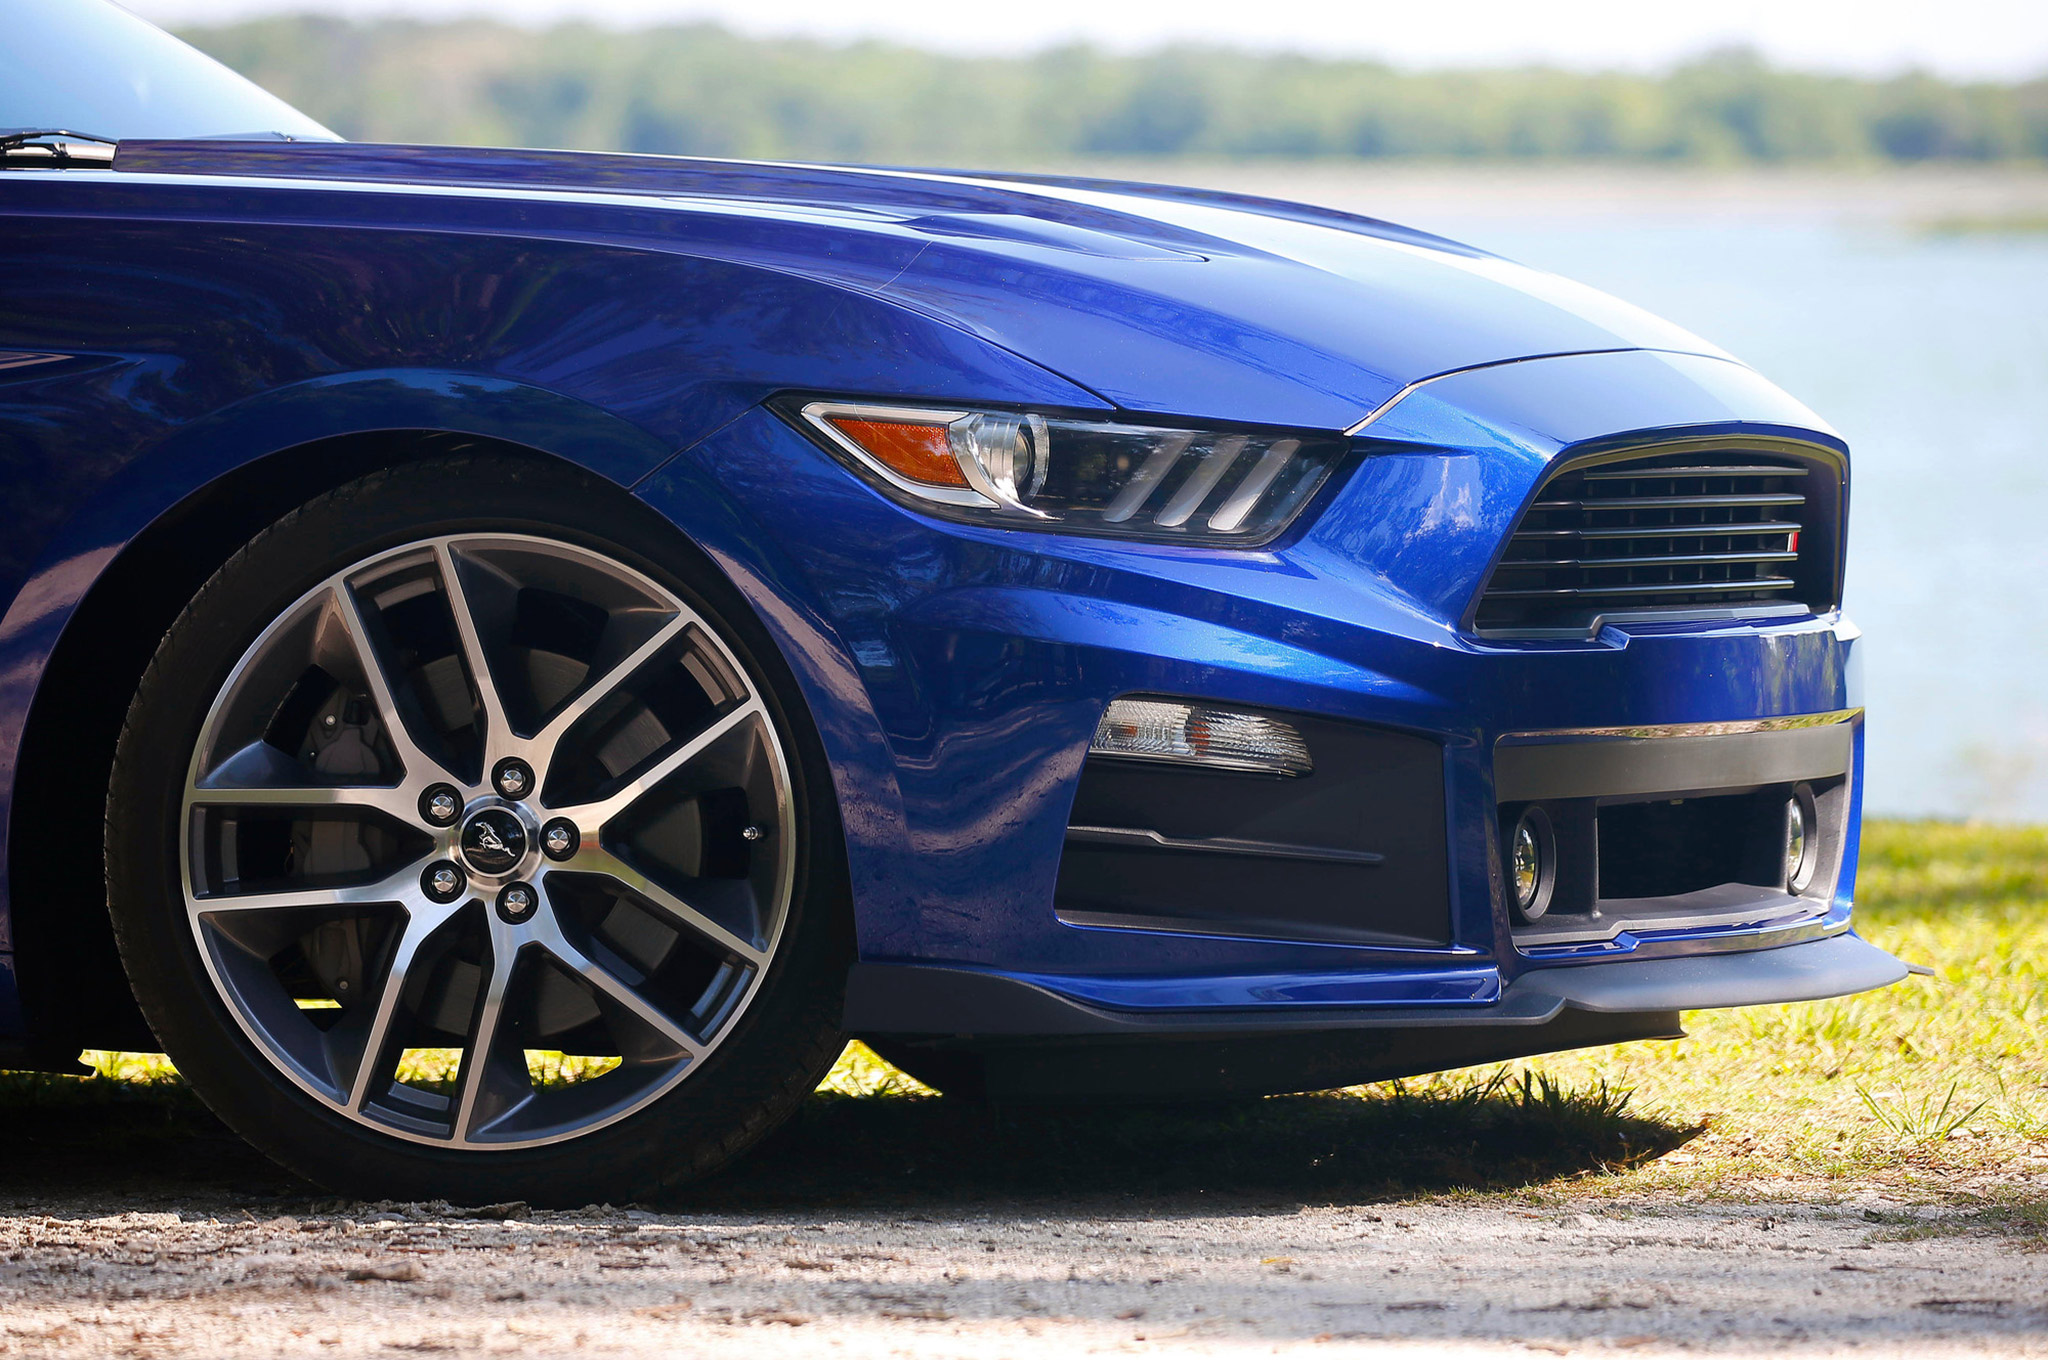 2015 Up Roush Performance Mustang Front Fascia Install Hot Rod Network 83 Engine Wiring Harness The Kit Is Used To Extend Driving Lights Since They Are Relocated On